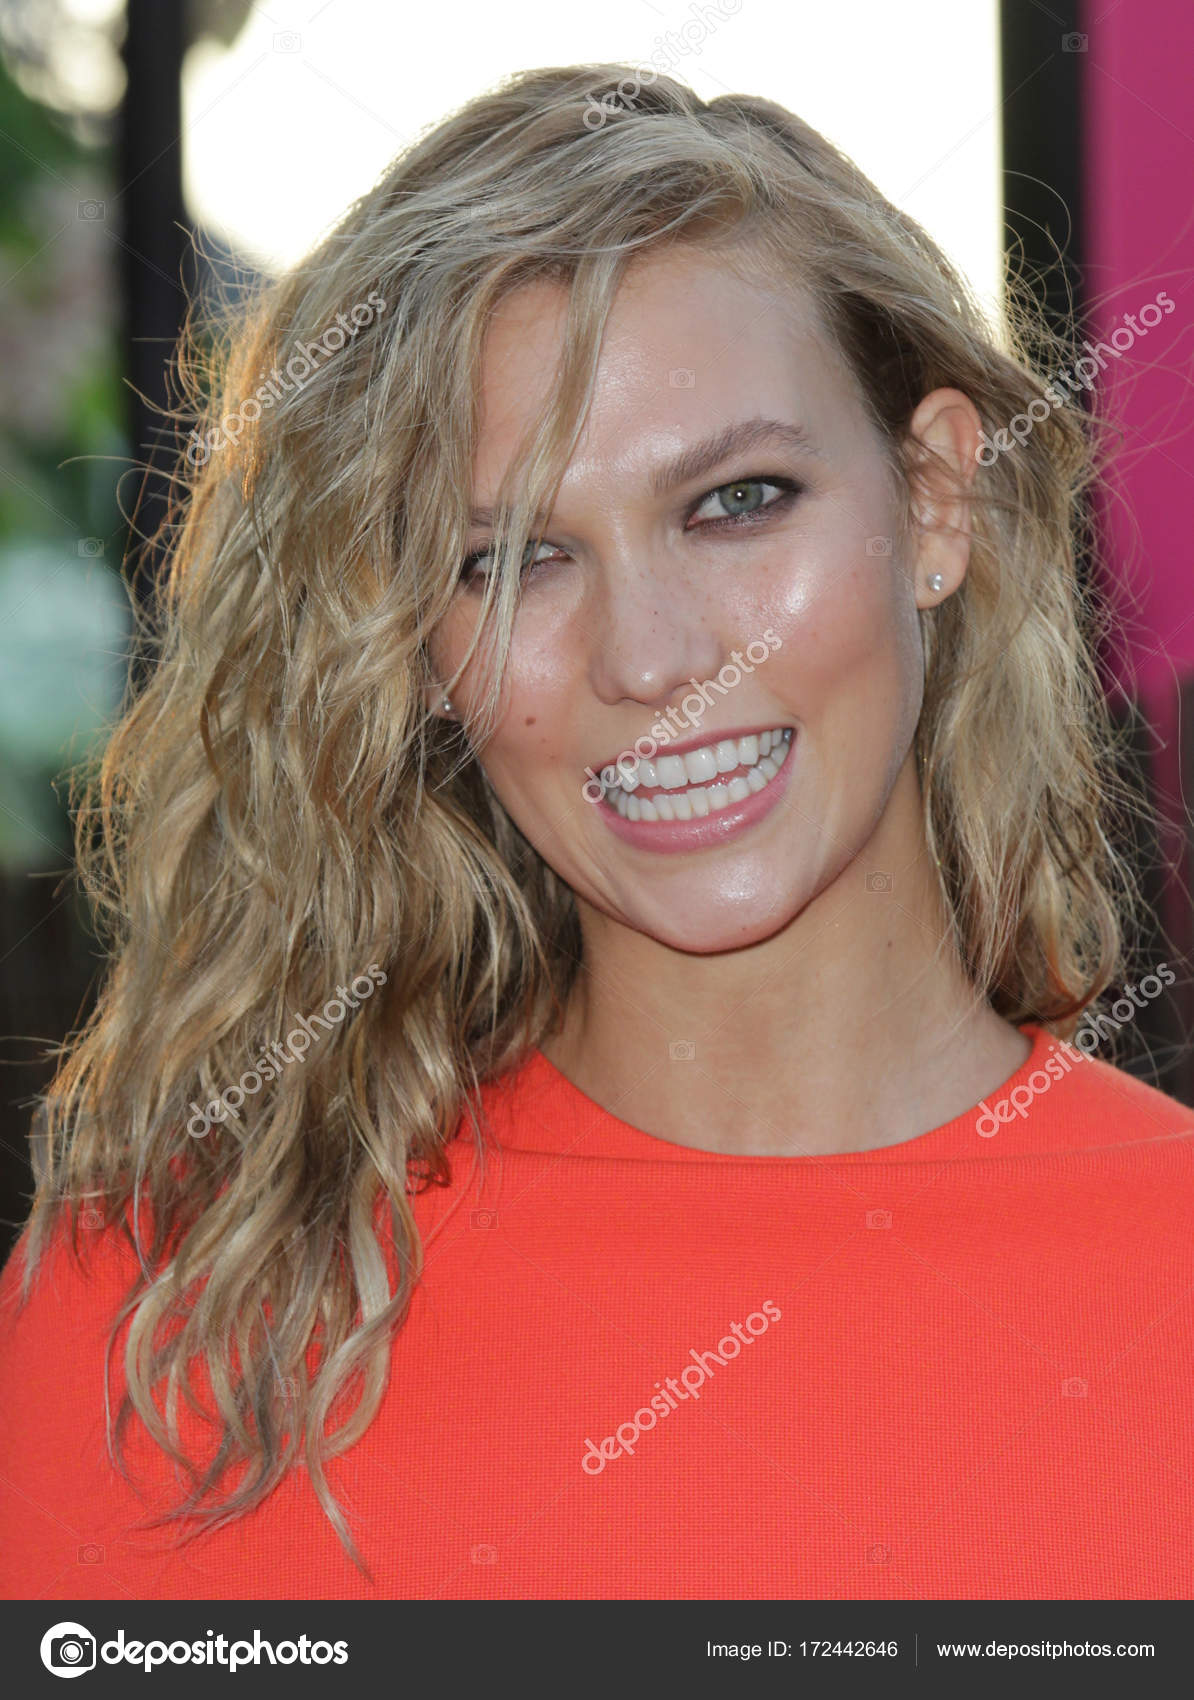 LONDON - JUL 2, 2015: Karlie Kloss attends the Serpentine Gallery Summer Party at Kensington Gardens on Jul 2, 2015 in London — Photo by ...